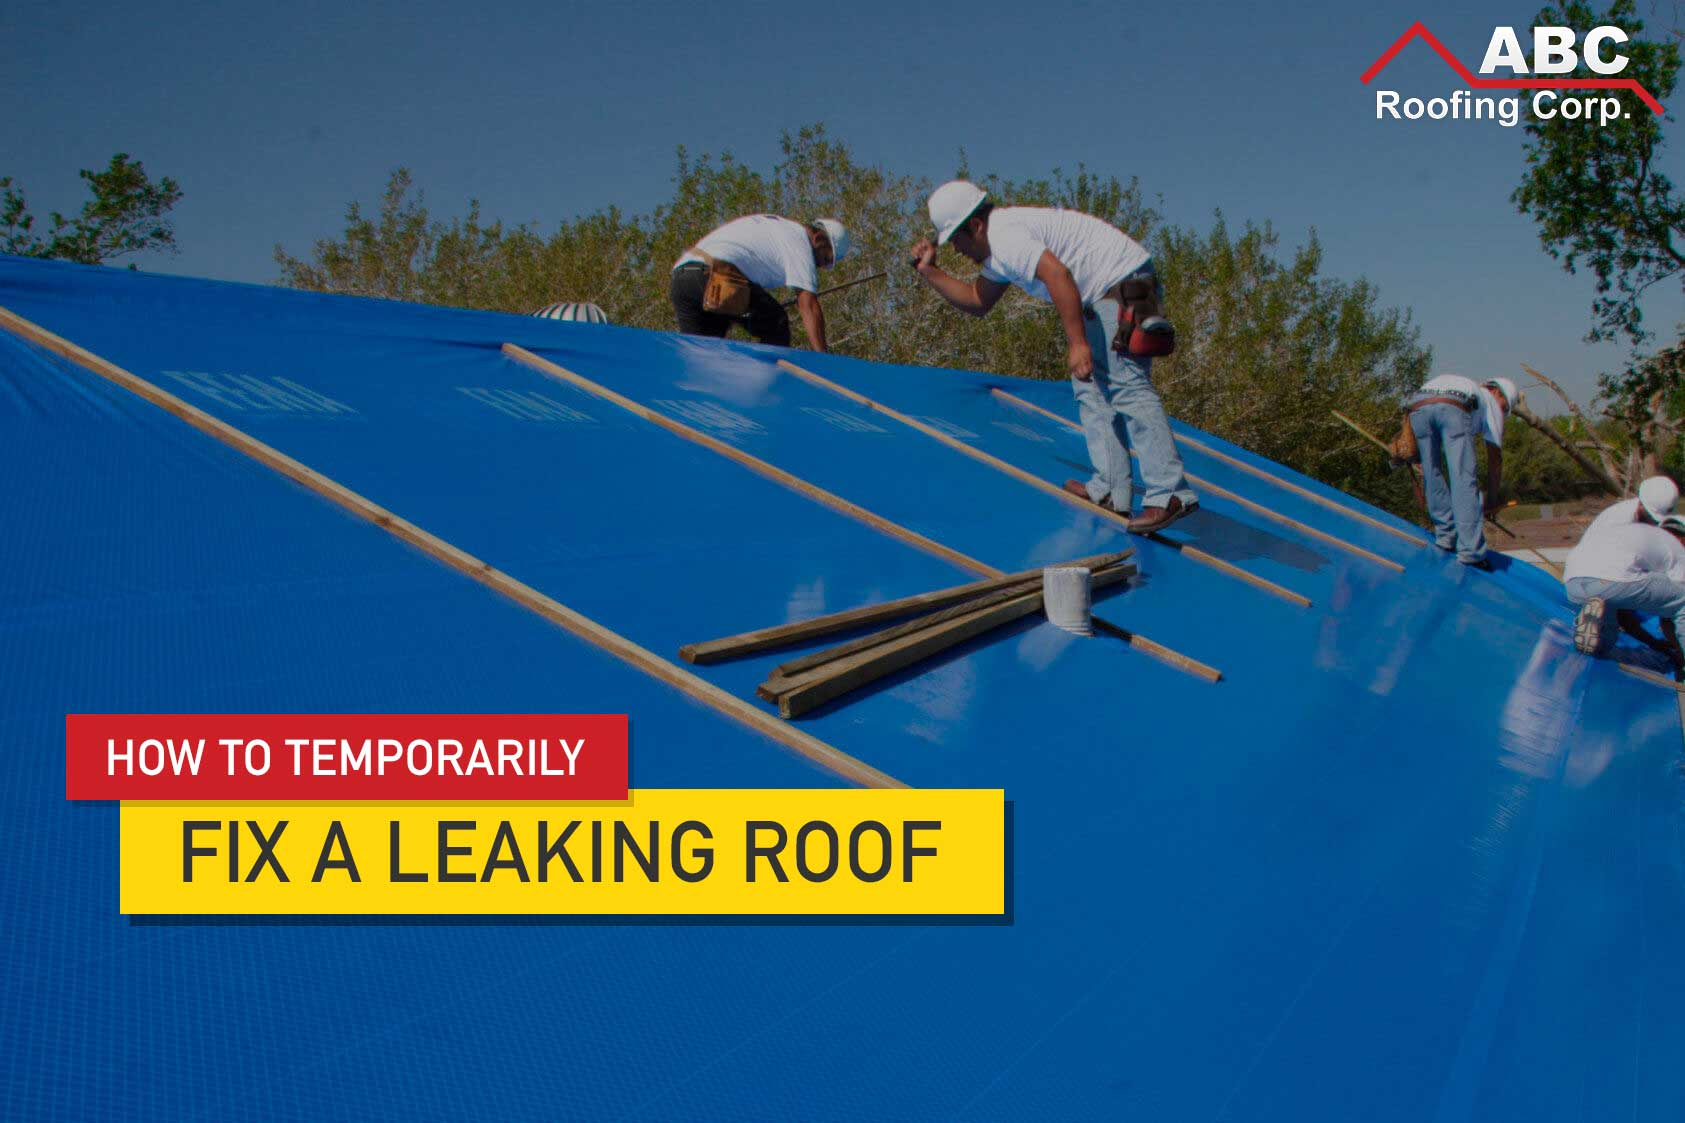 Fix A Leaking Roof